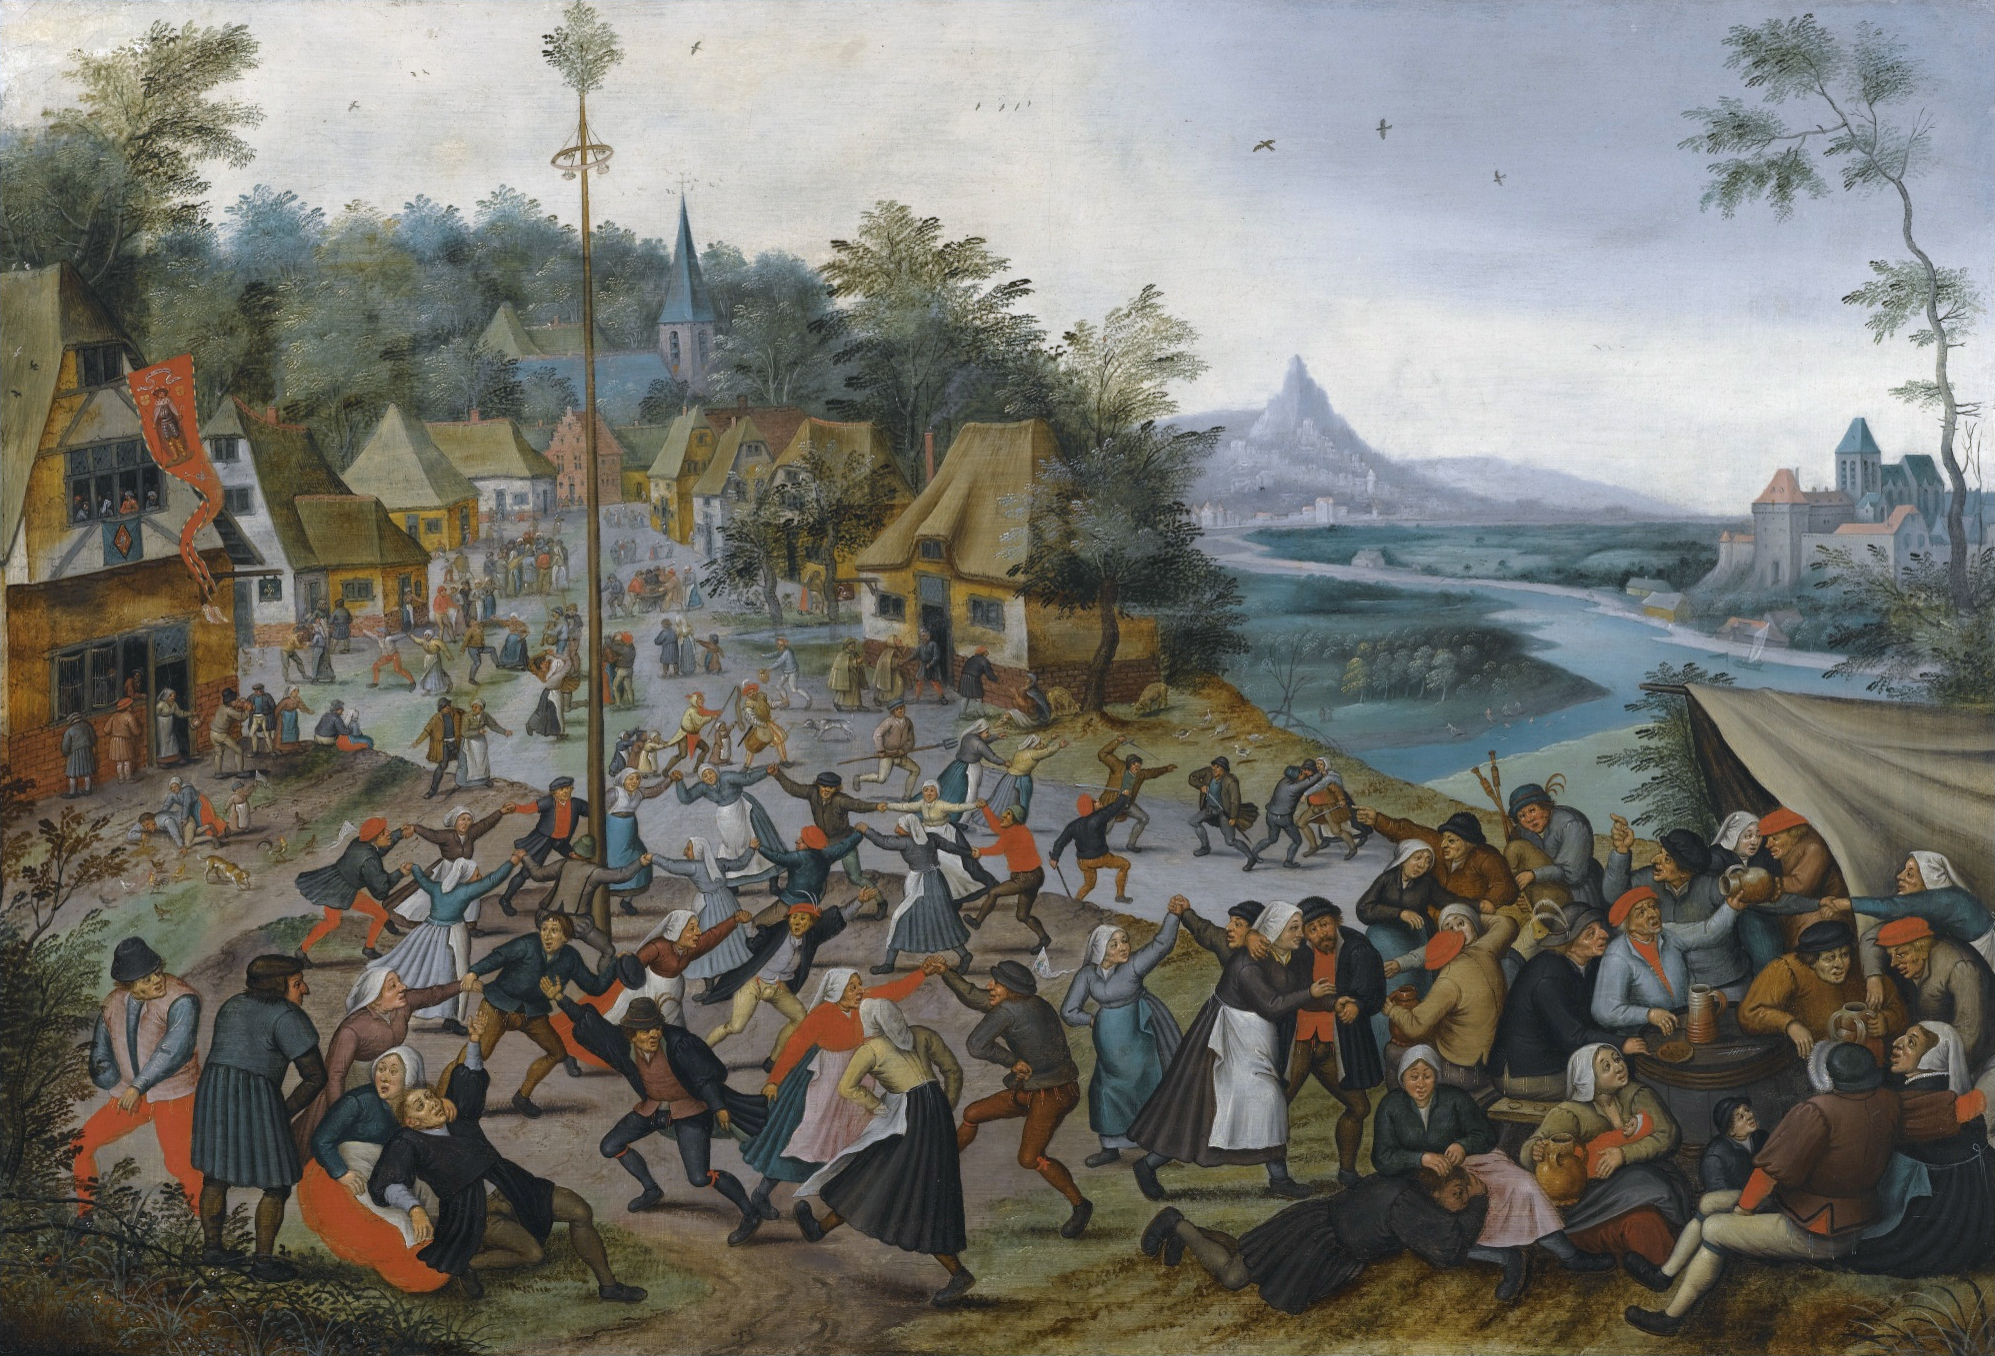 http://upload.wikimedia.org/wikipedia/commons/e/eb/St._George%27s_Kermis_with_the_Dance_around_the_Maypole_by_Pieter_Brueghel_the_Younger.jpg